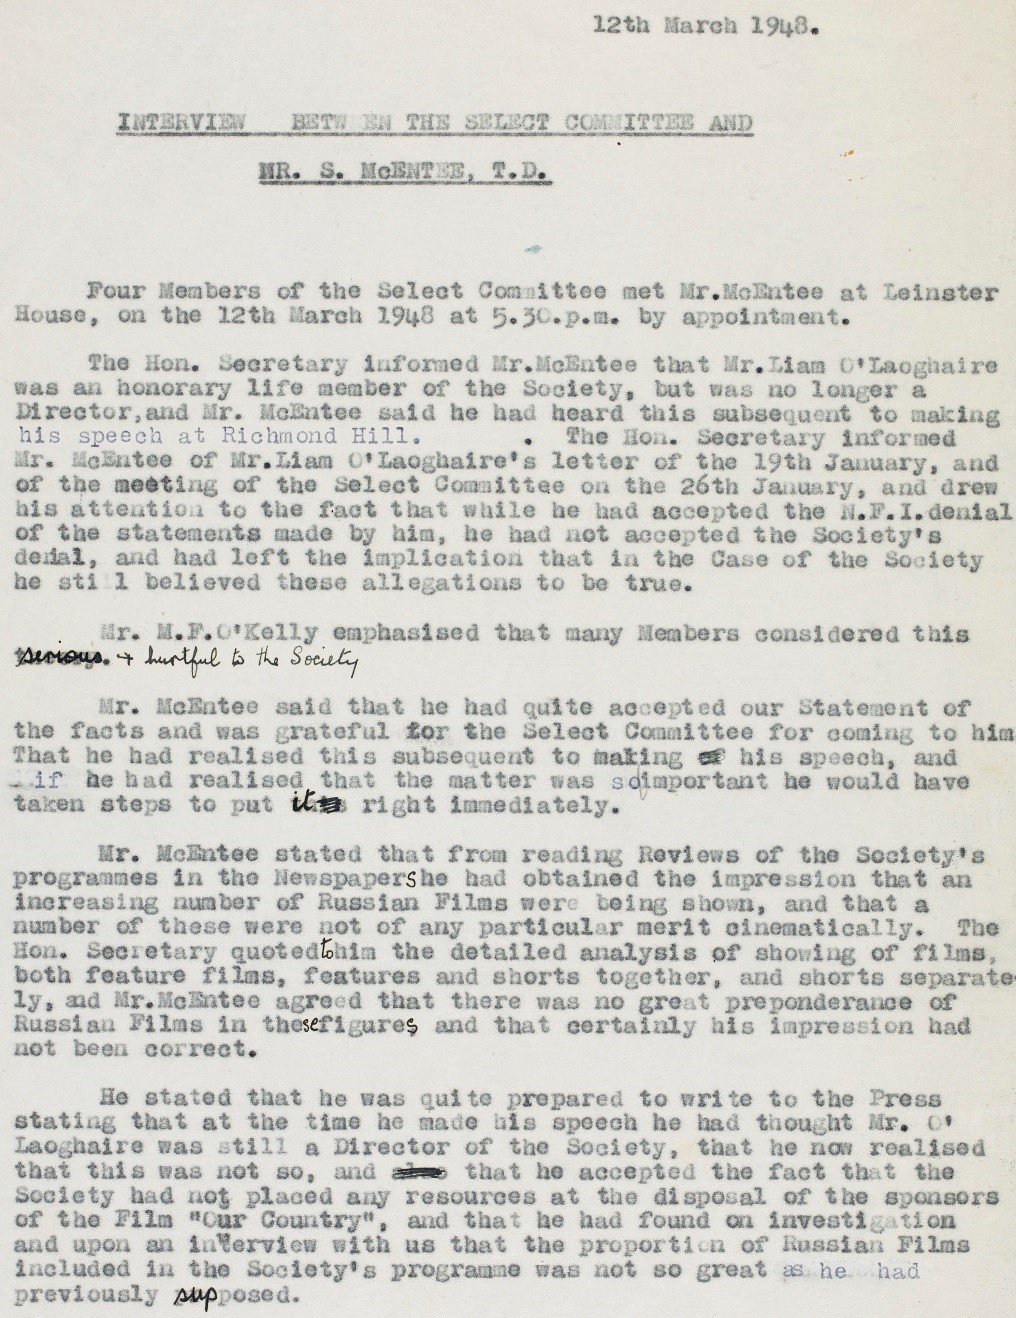 MS 50,000/76/6: Interview notes between the Irish Film Society select committee and Seán McEntee T.D.